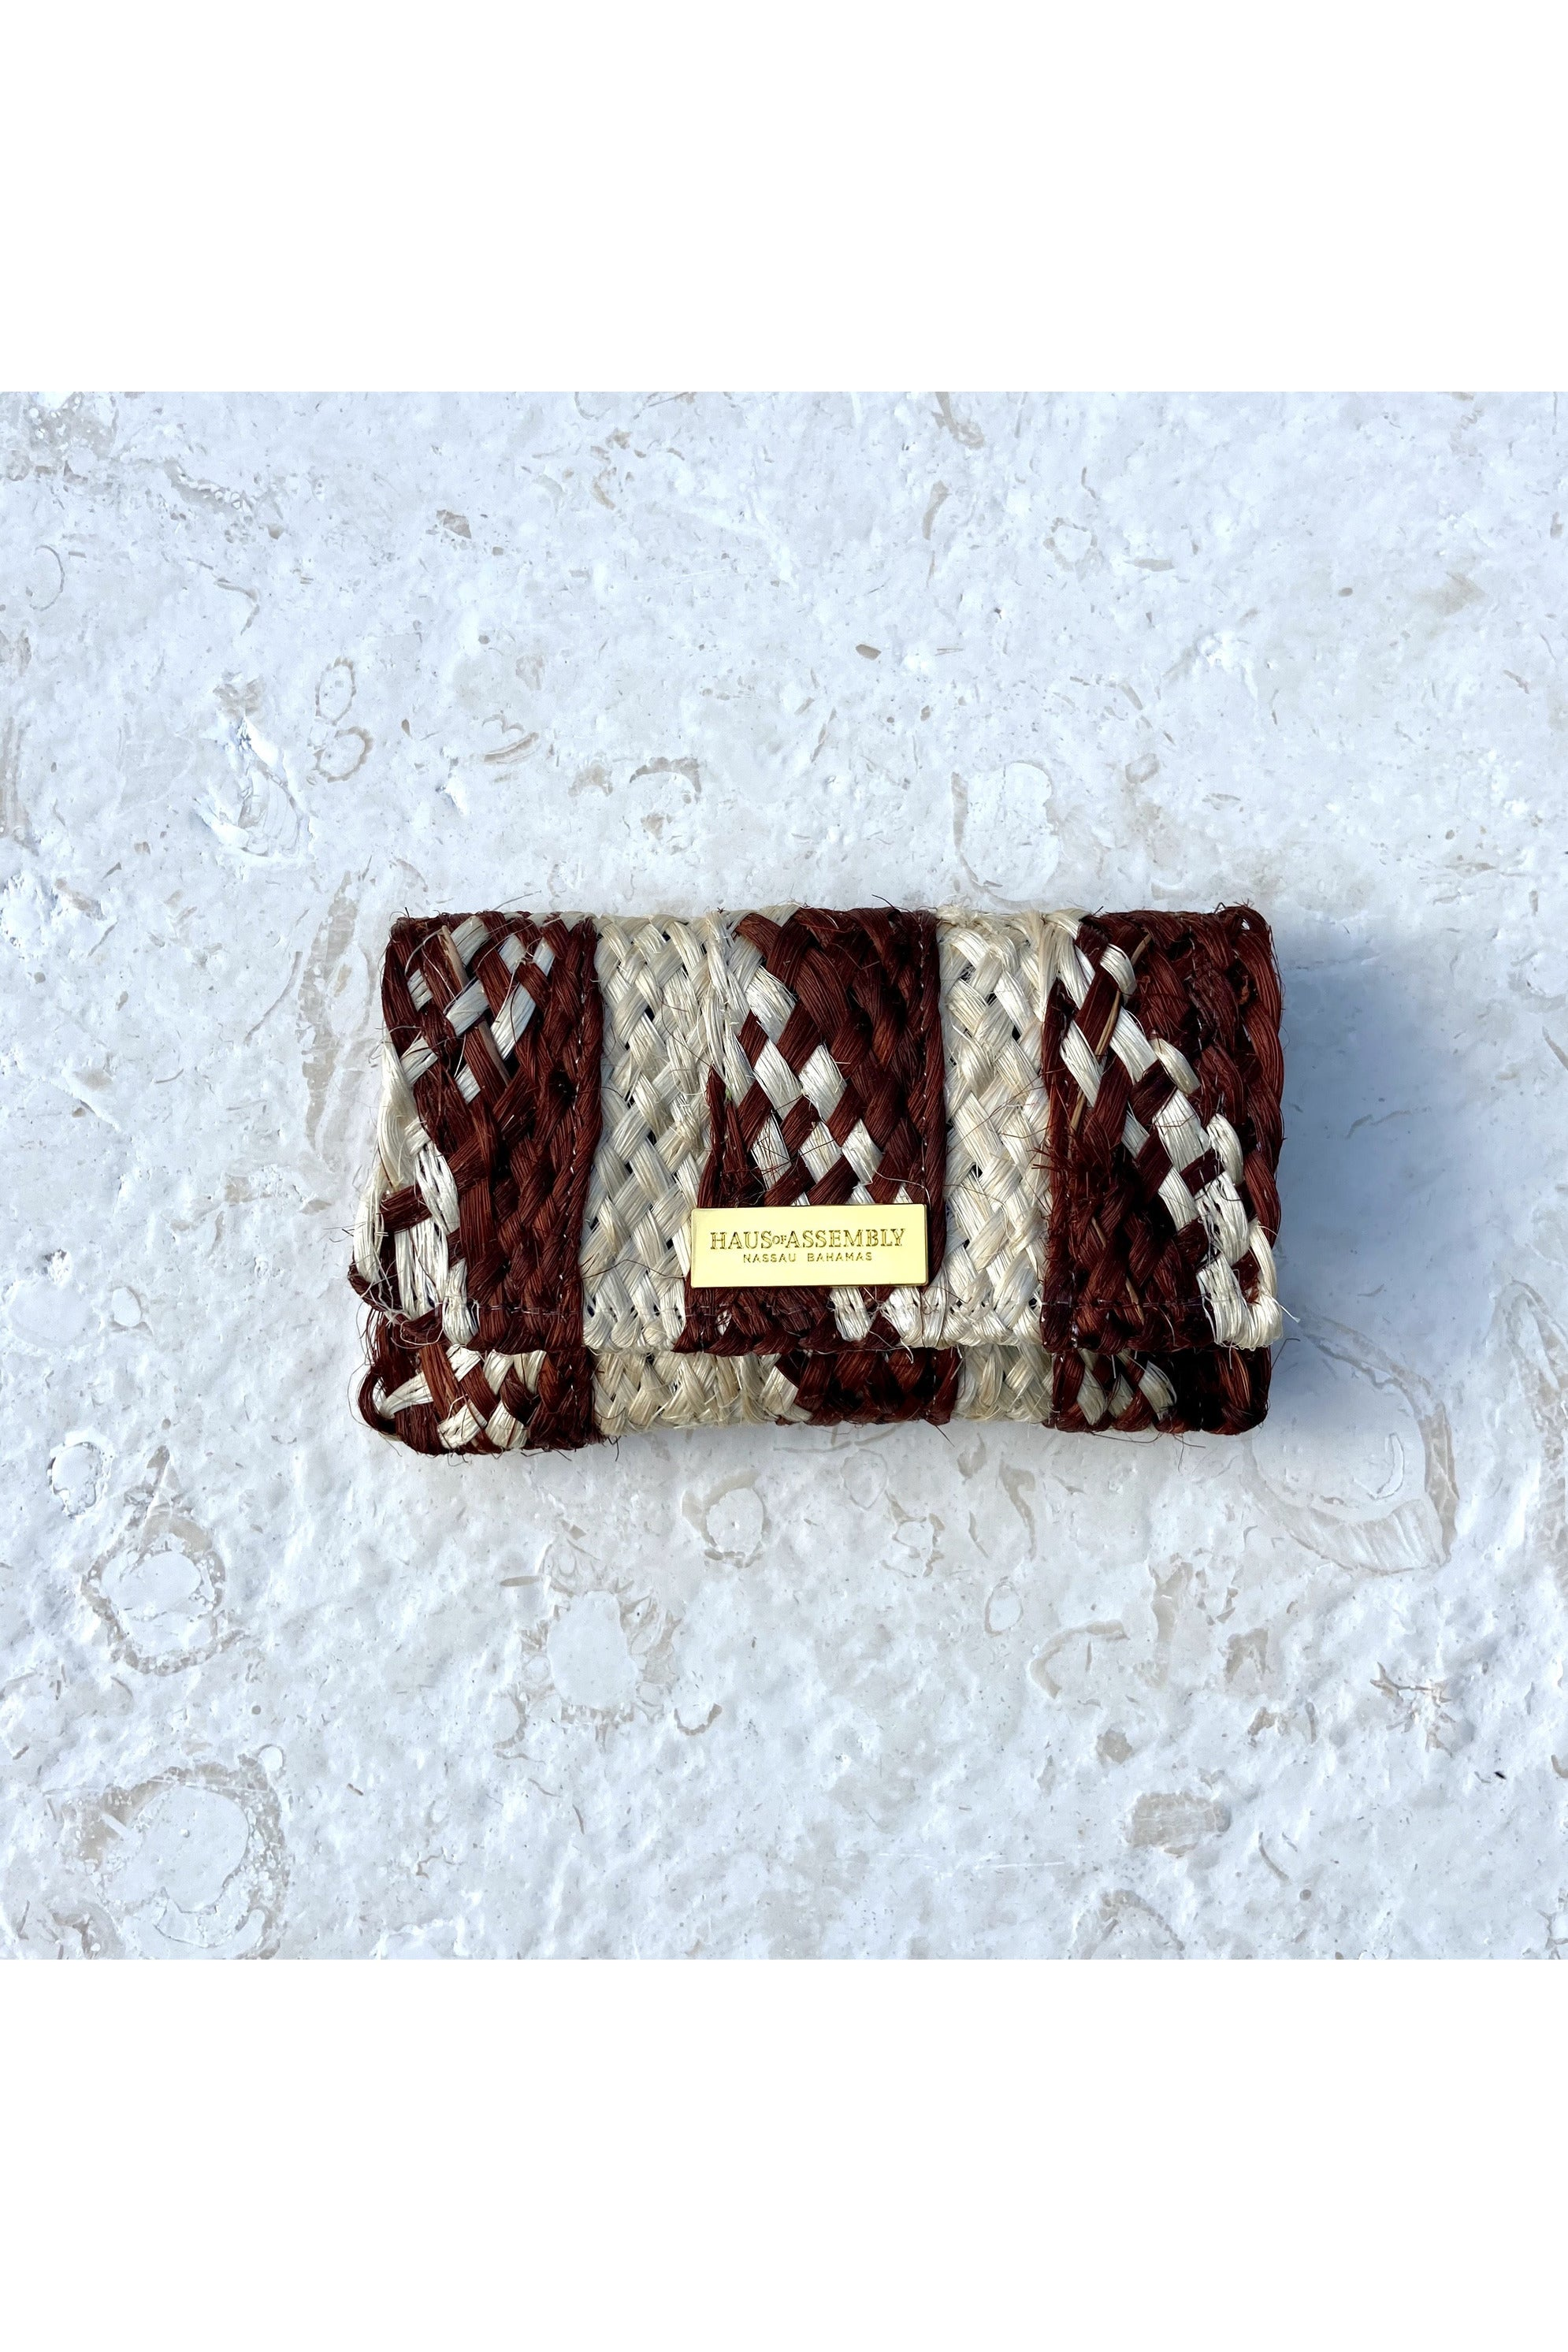 Warm Brown and White Sisal Card Wallet Coin Purse - Hausofassembly